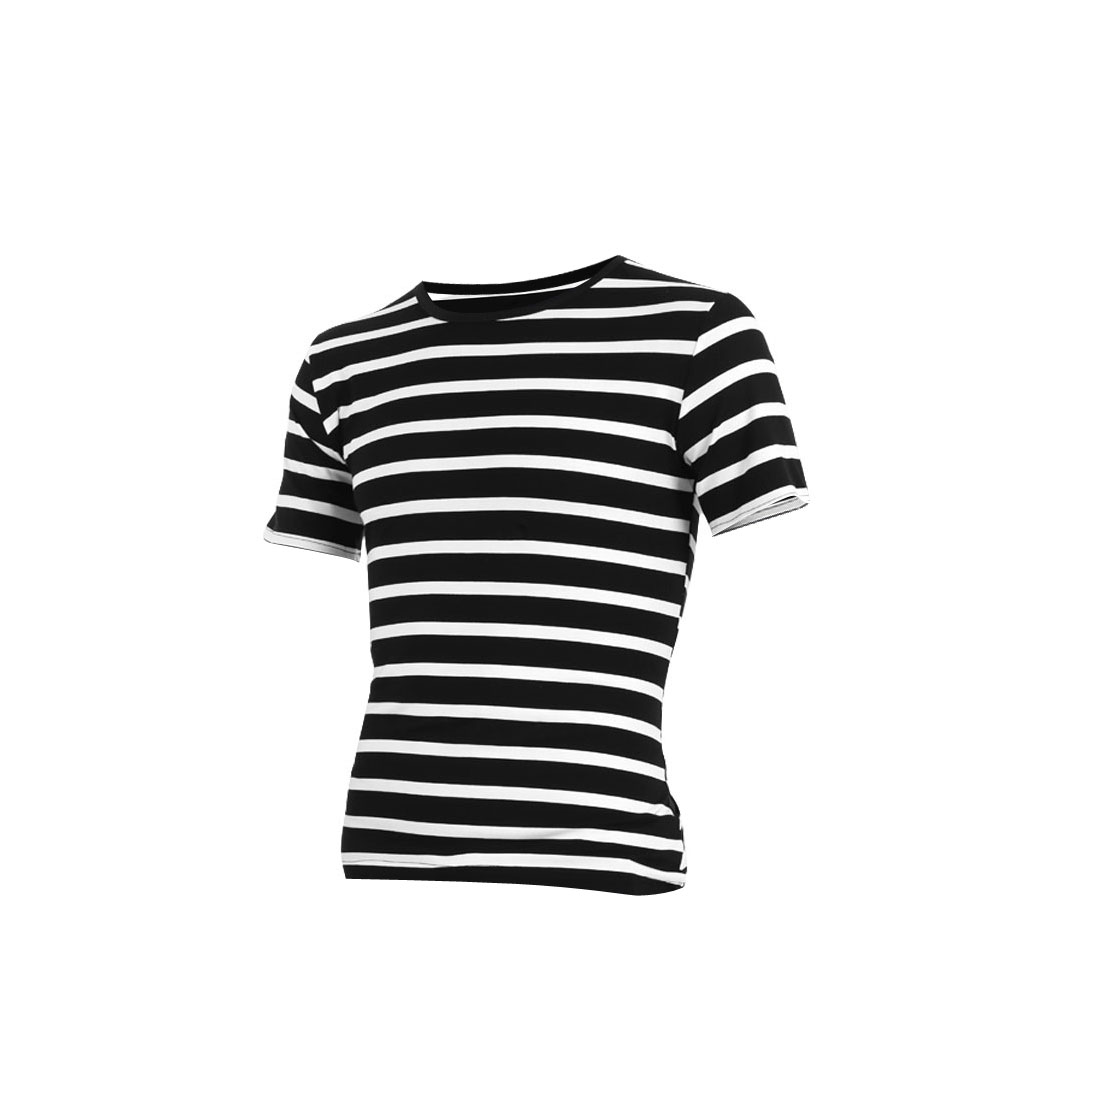 Man Round Neck Short Sleeves Stripes Prints Chic Shirts Black M